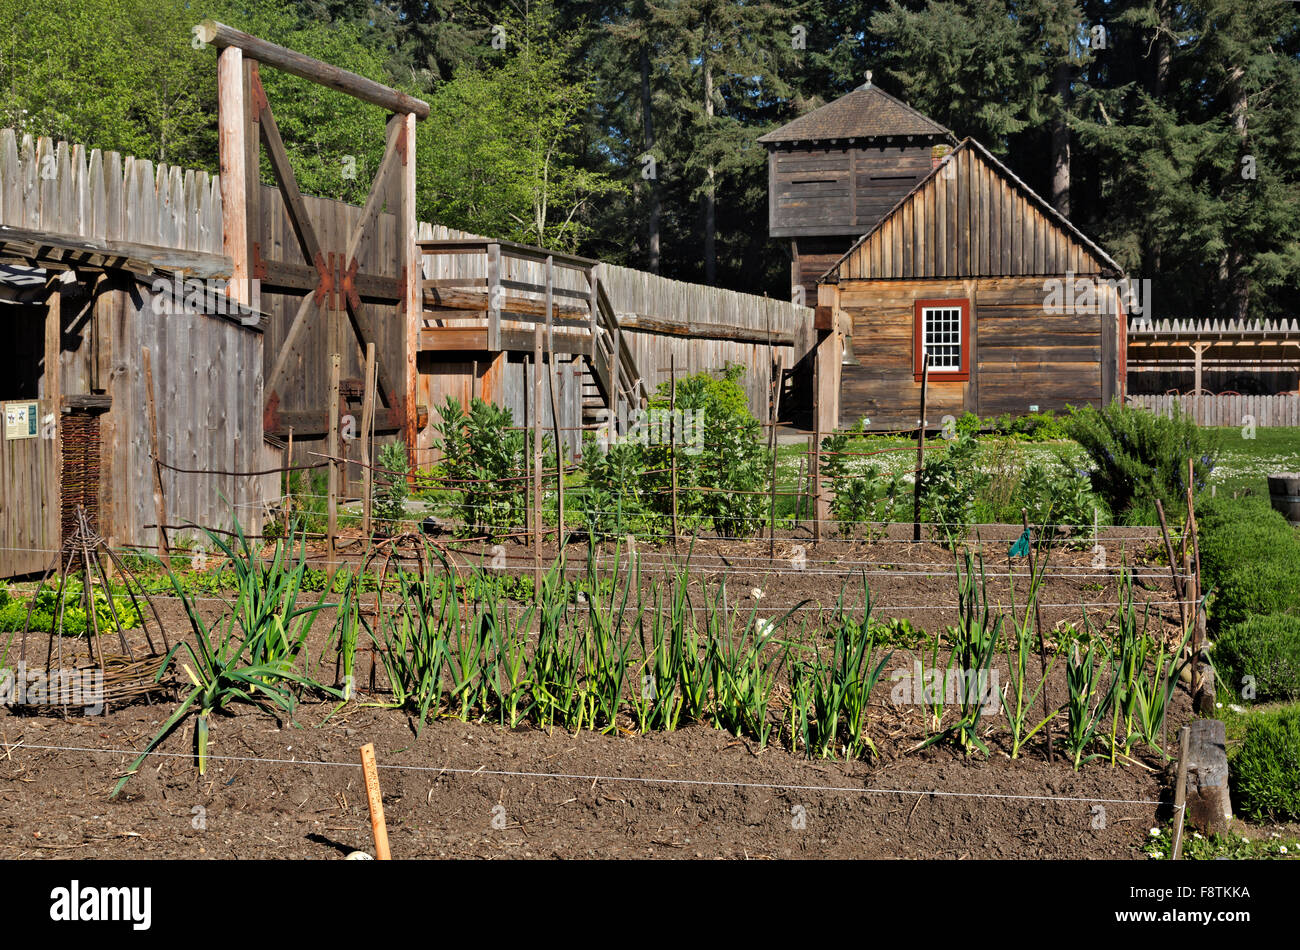 WASHINGTON - Traditional garden, Block House and the outer stockade wall at the Fort Nisqually Historic Site, Point - Stock Image